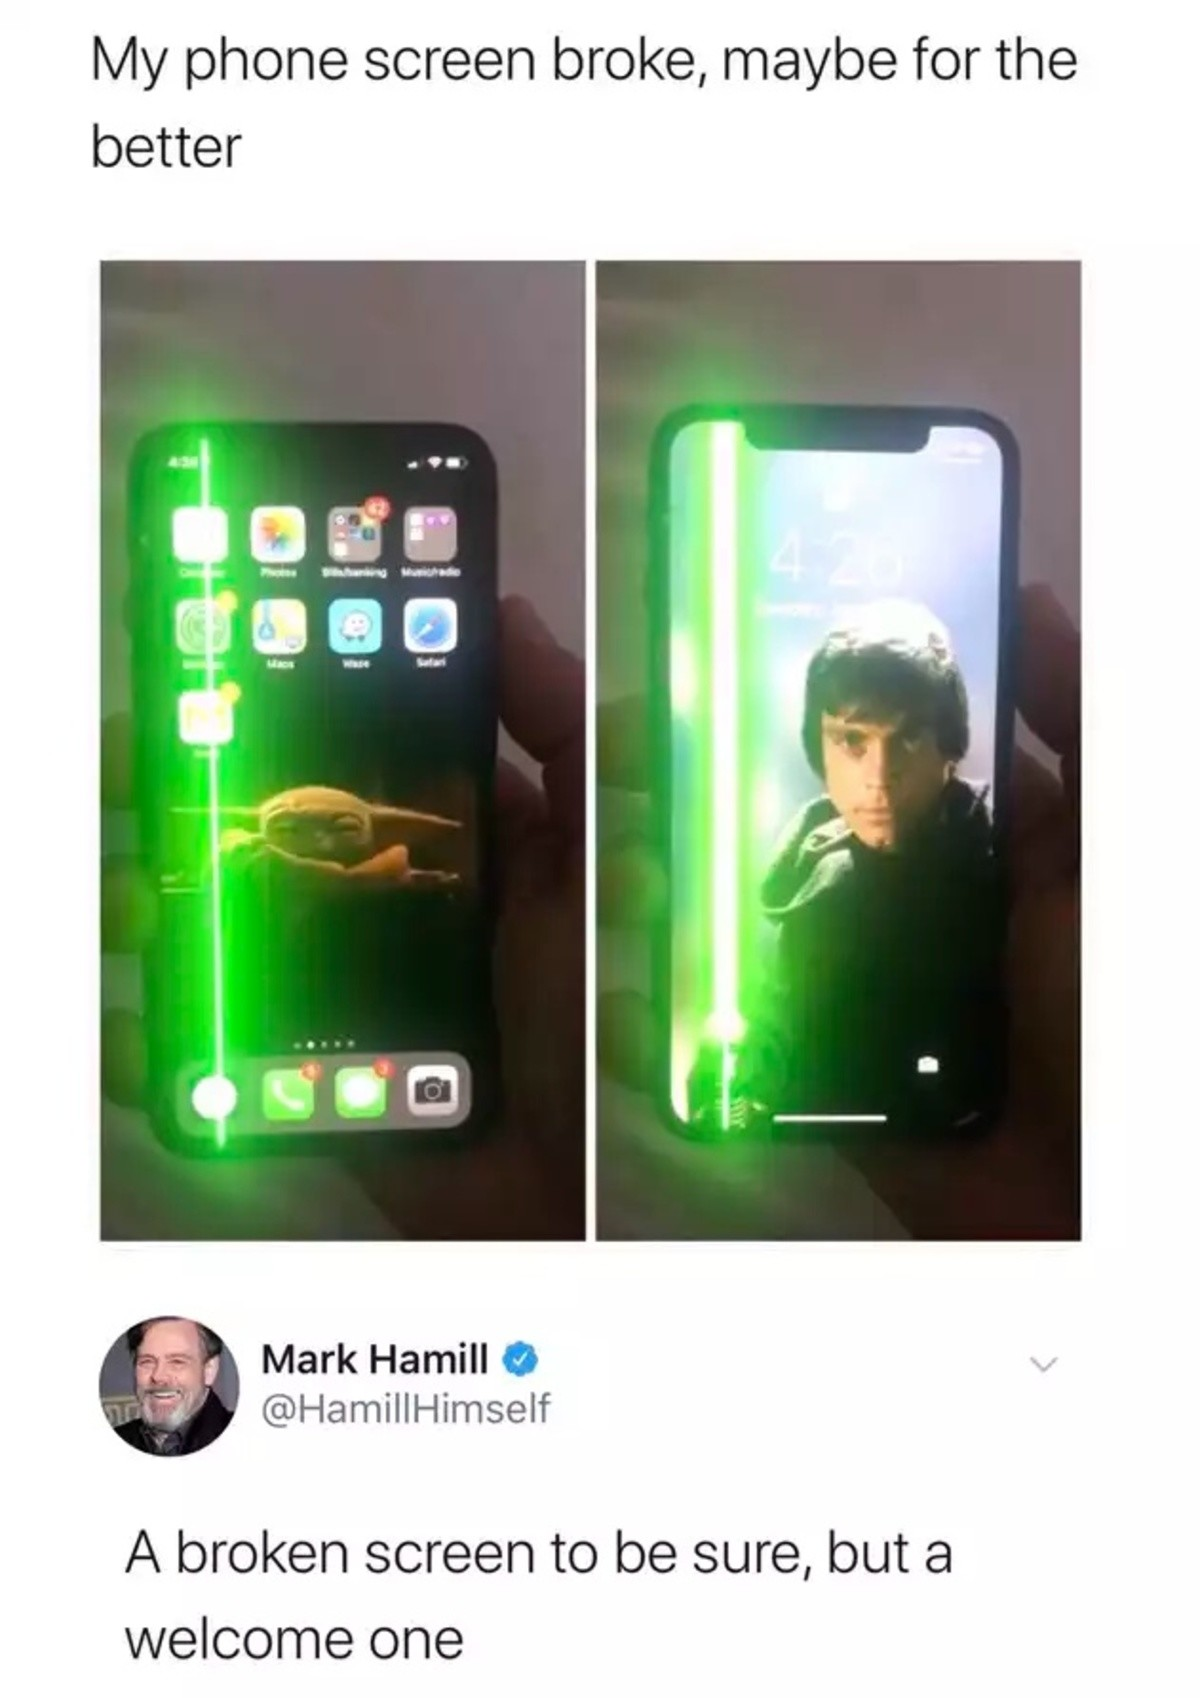 aloof thin Wren. .. Finally some good content from Mark Hamill